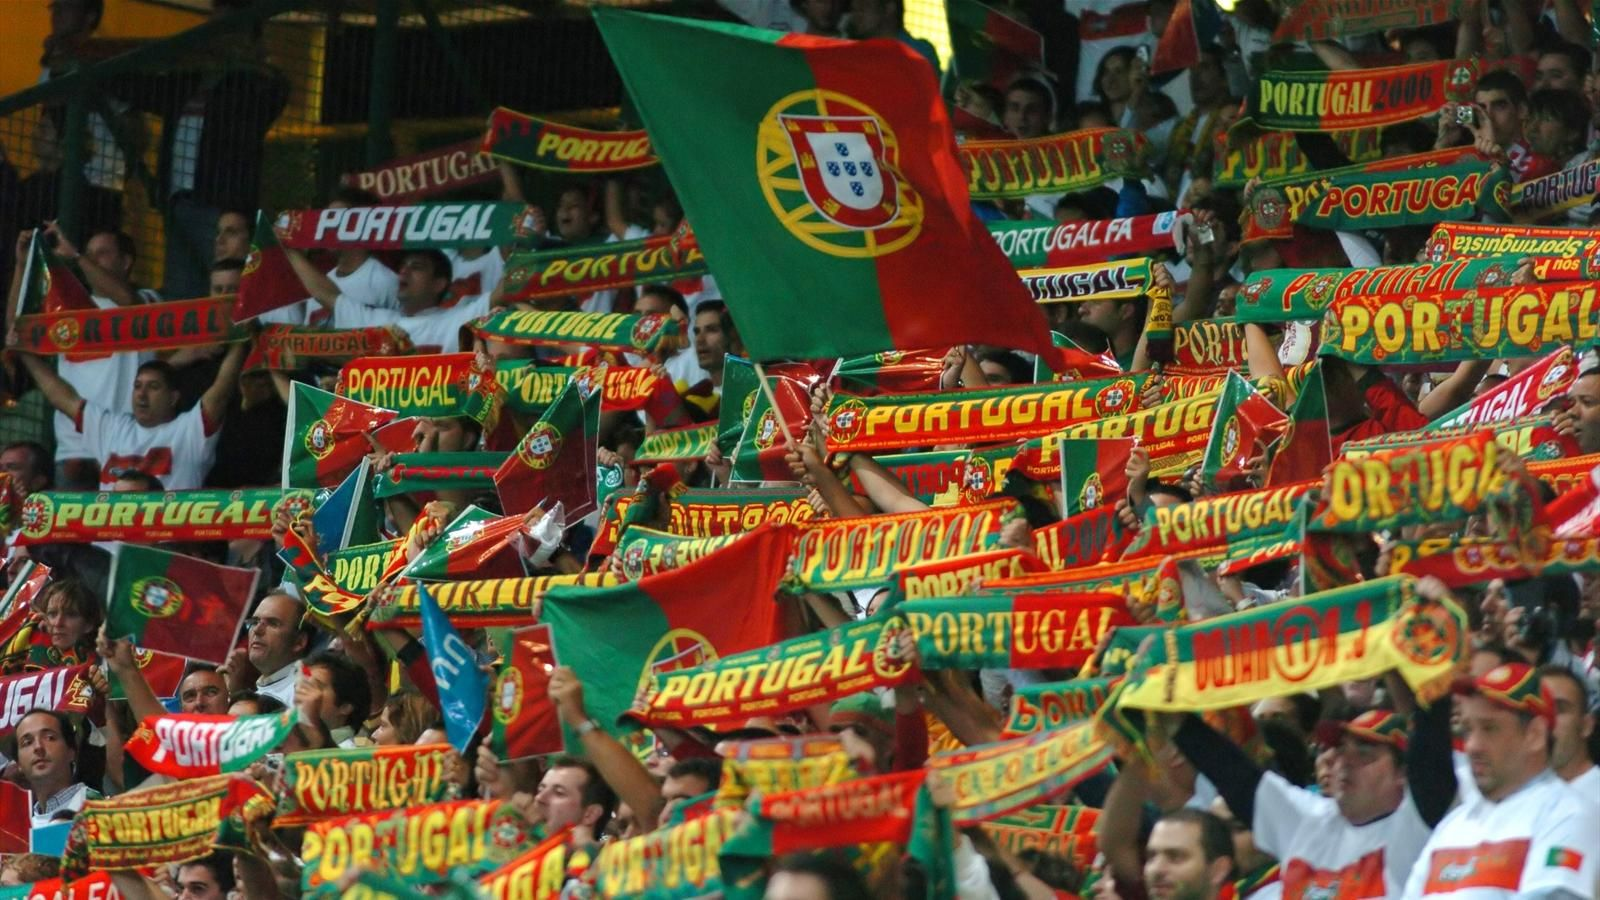 Portugal Ultras